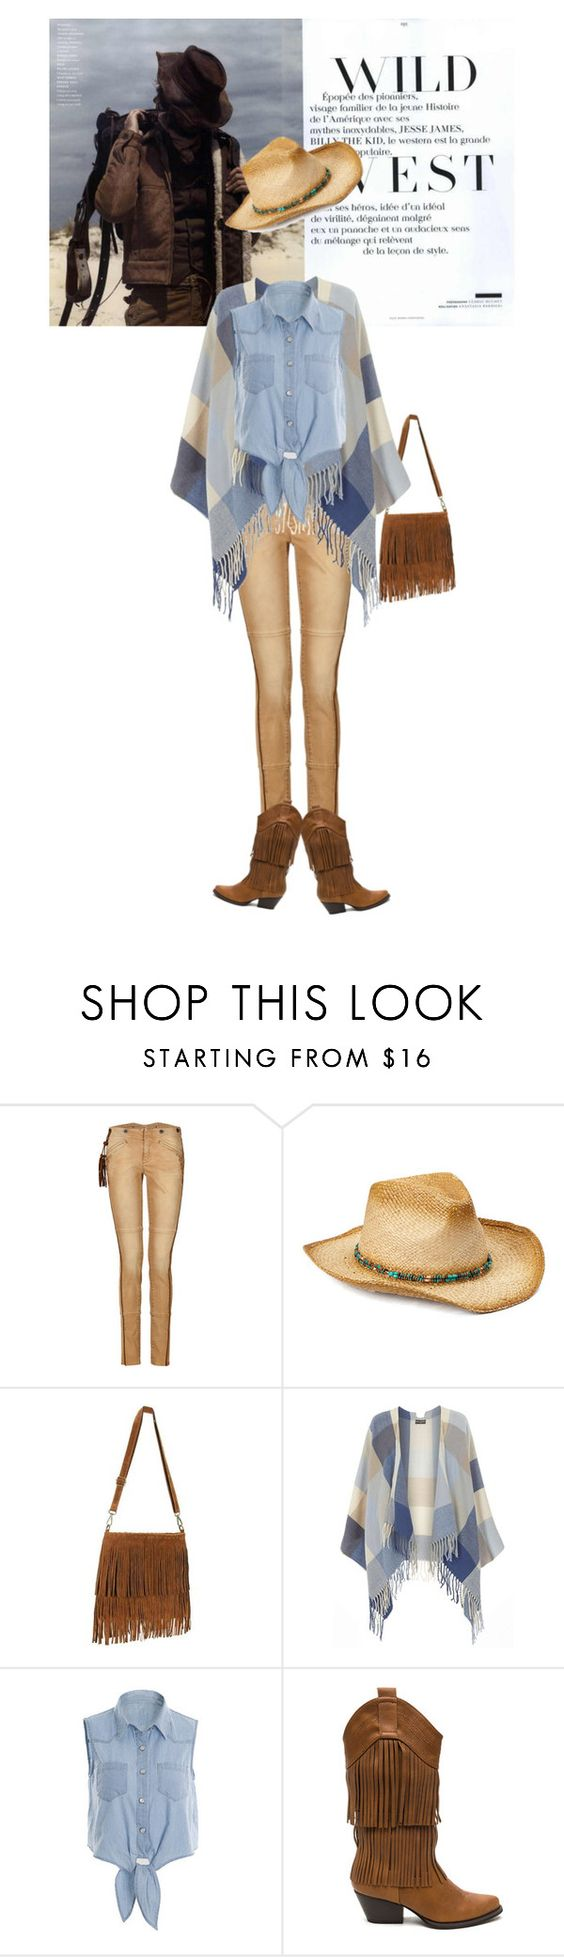 """Wild west"" by elarmariodelcamaleon ❤ liked on Polyvore featuring Ralph Lauren Blue Label, Boardwalk Style and Dorothy Perkins"